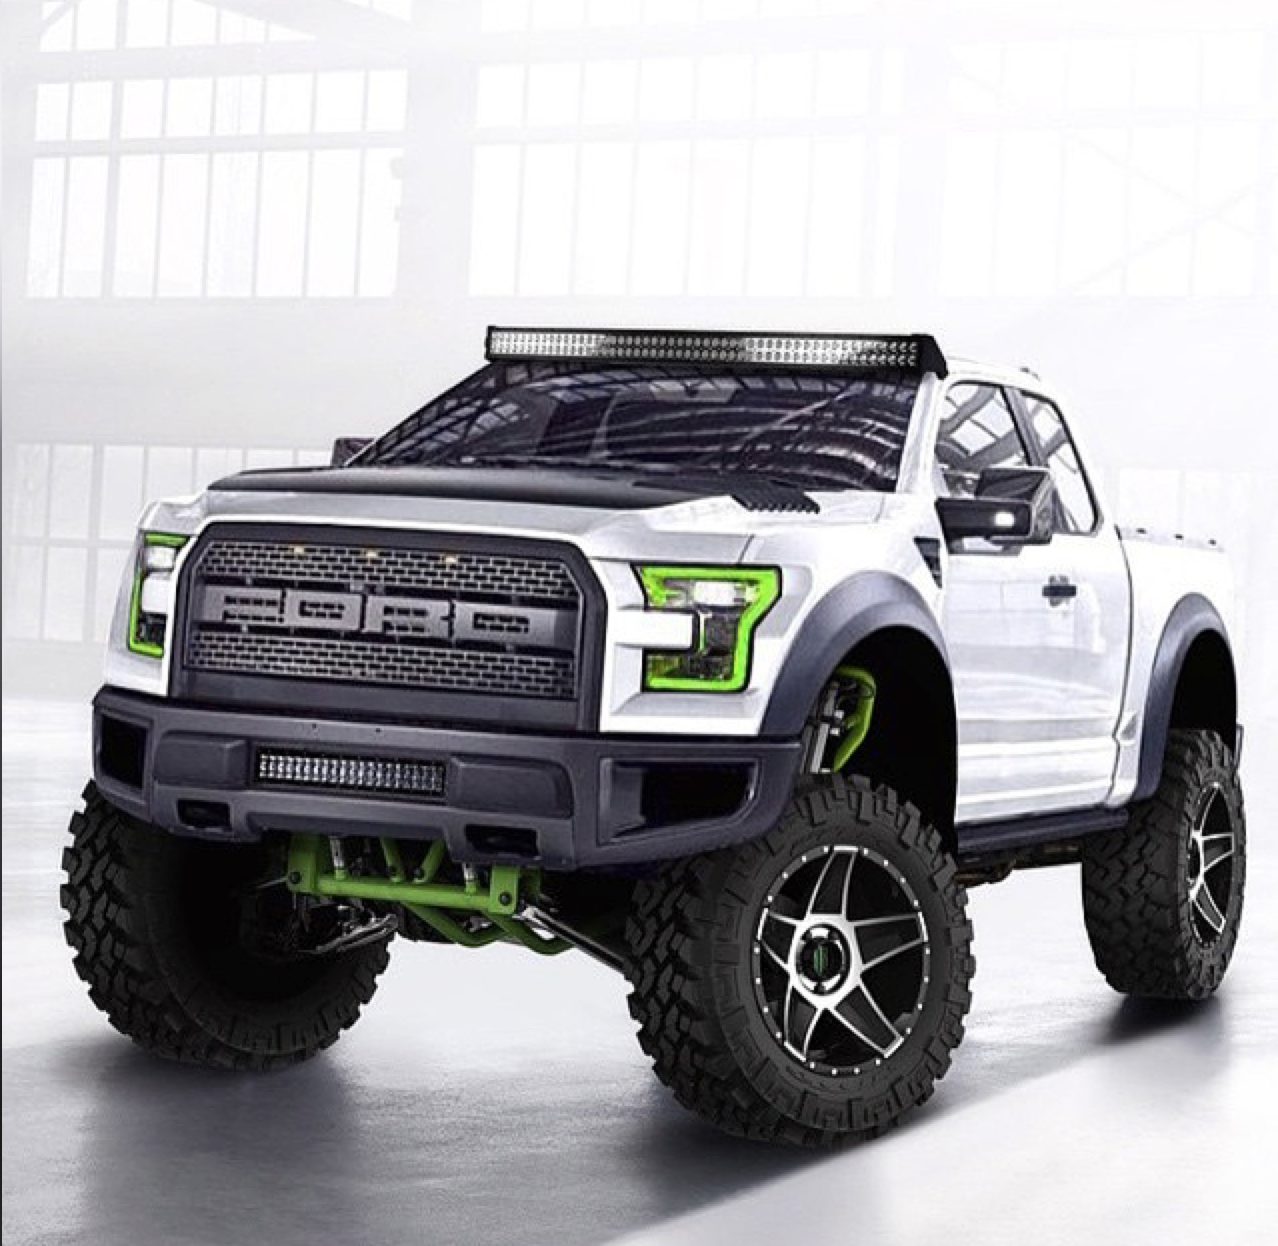 2017 Ford Raptor Loses Weight, Gets